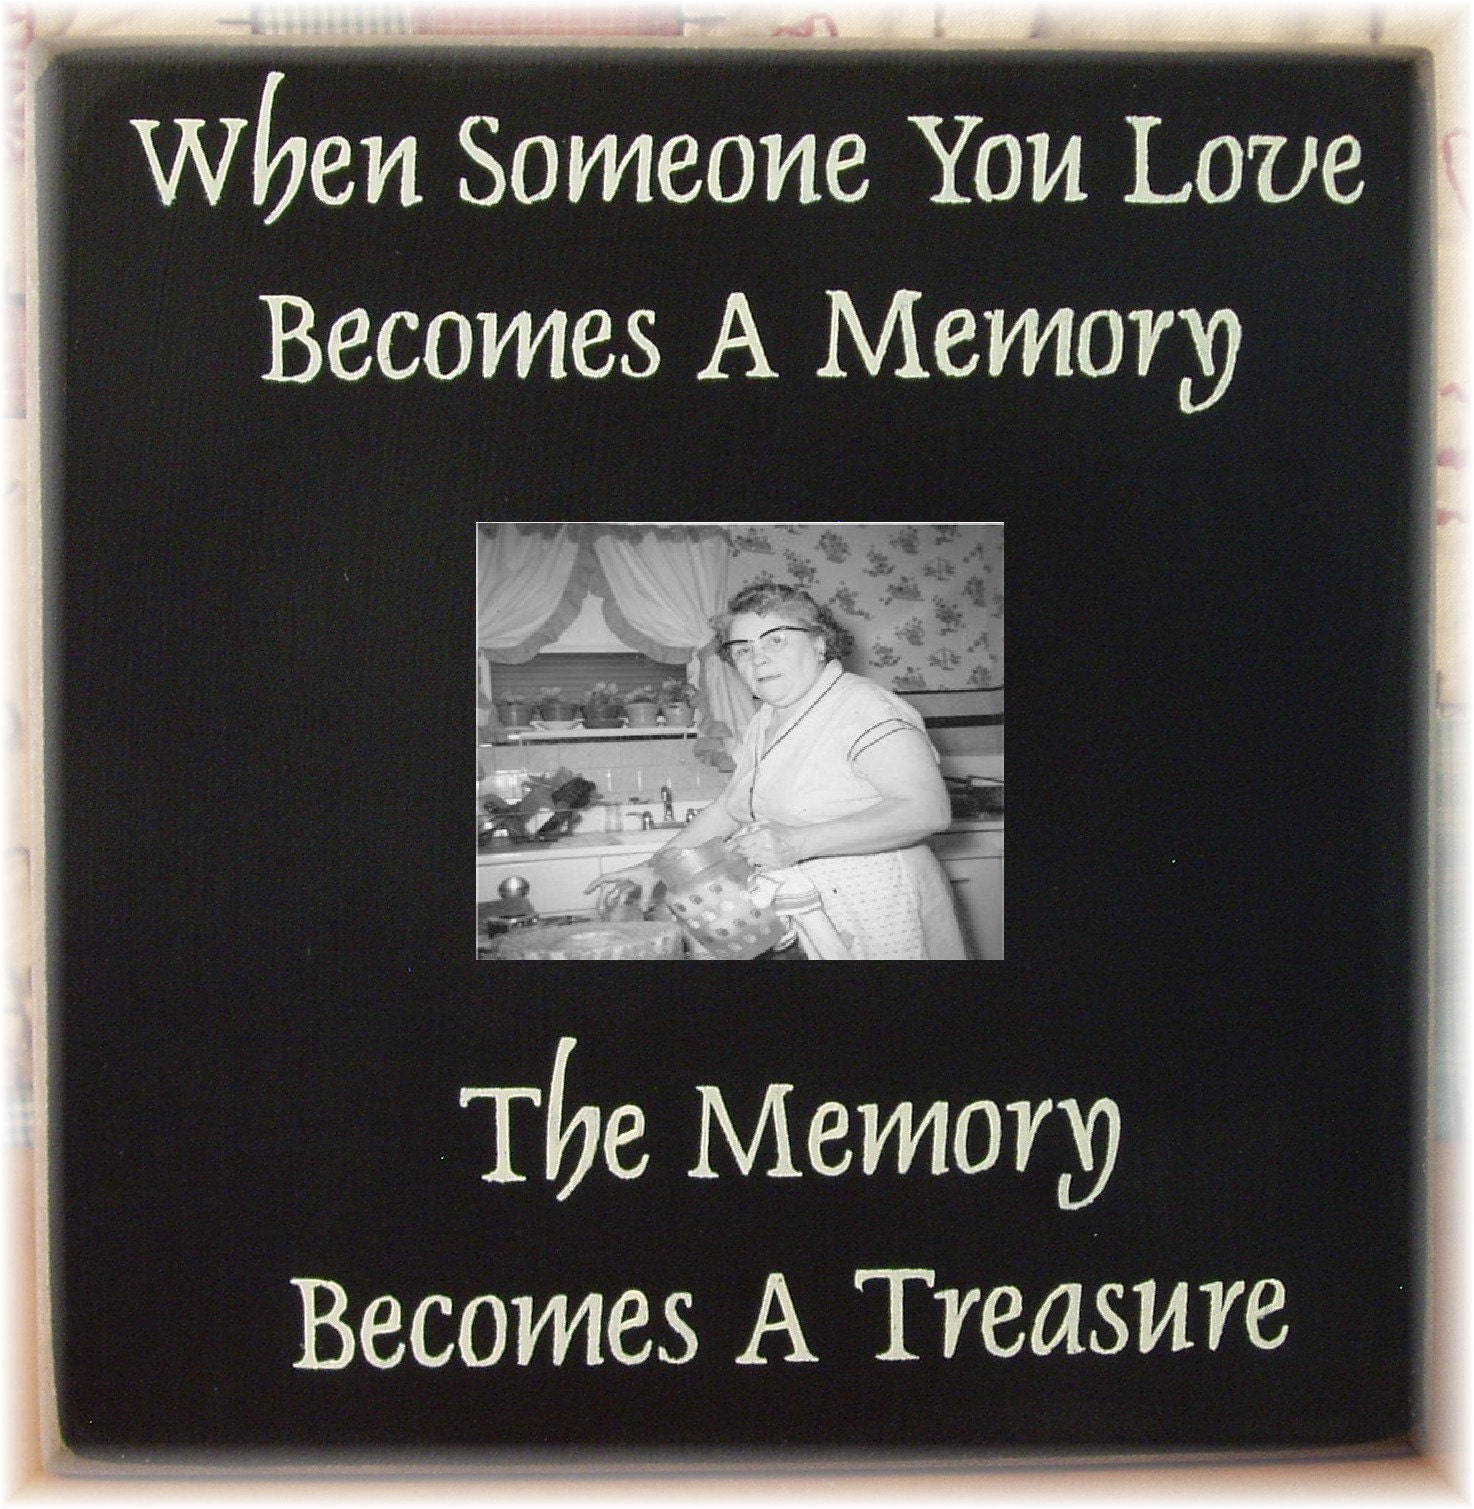 When Someone You Love Becomes A Memory That Memory Becomes A: When Someone You Love Becomes A Memory The By Woodsignsbypatti